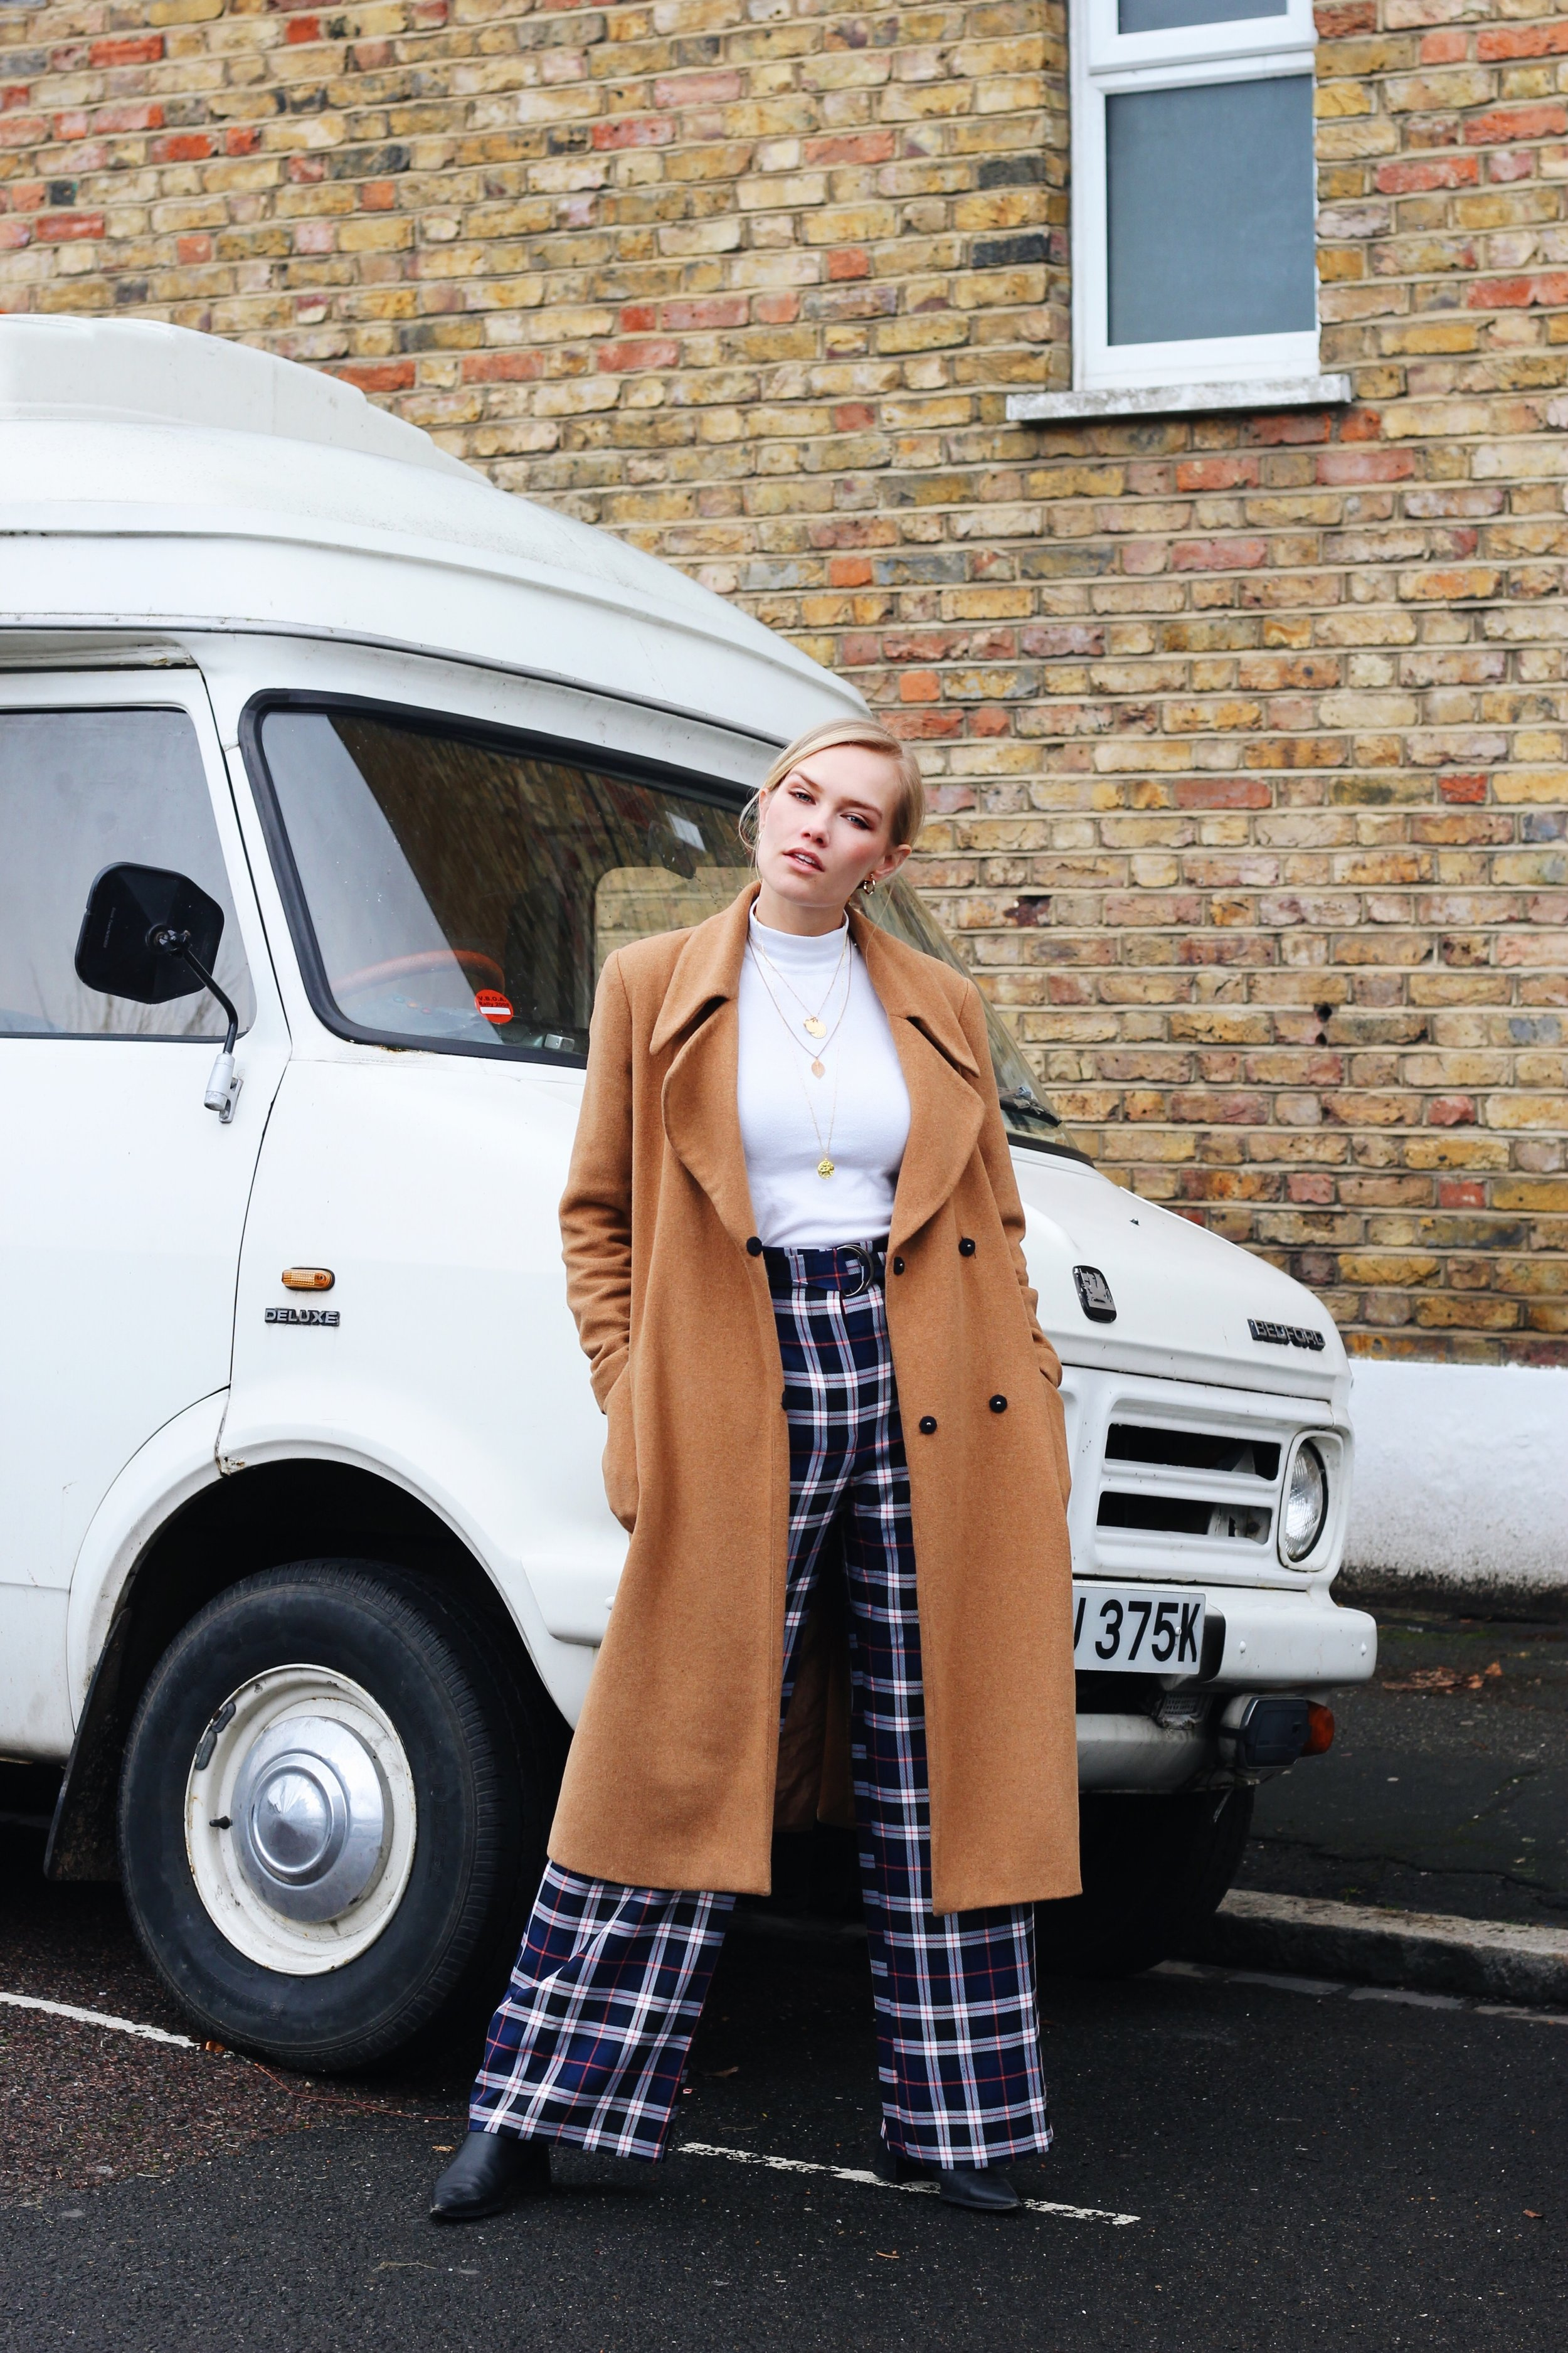 Here I am wearing plaid navy wide legged trousers from   Miss Selfridge   which you can find further down in this post in the  'SHOP THE LOOK'  section.